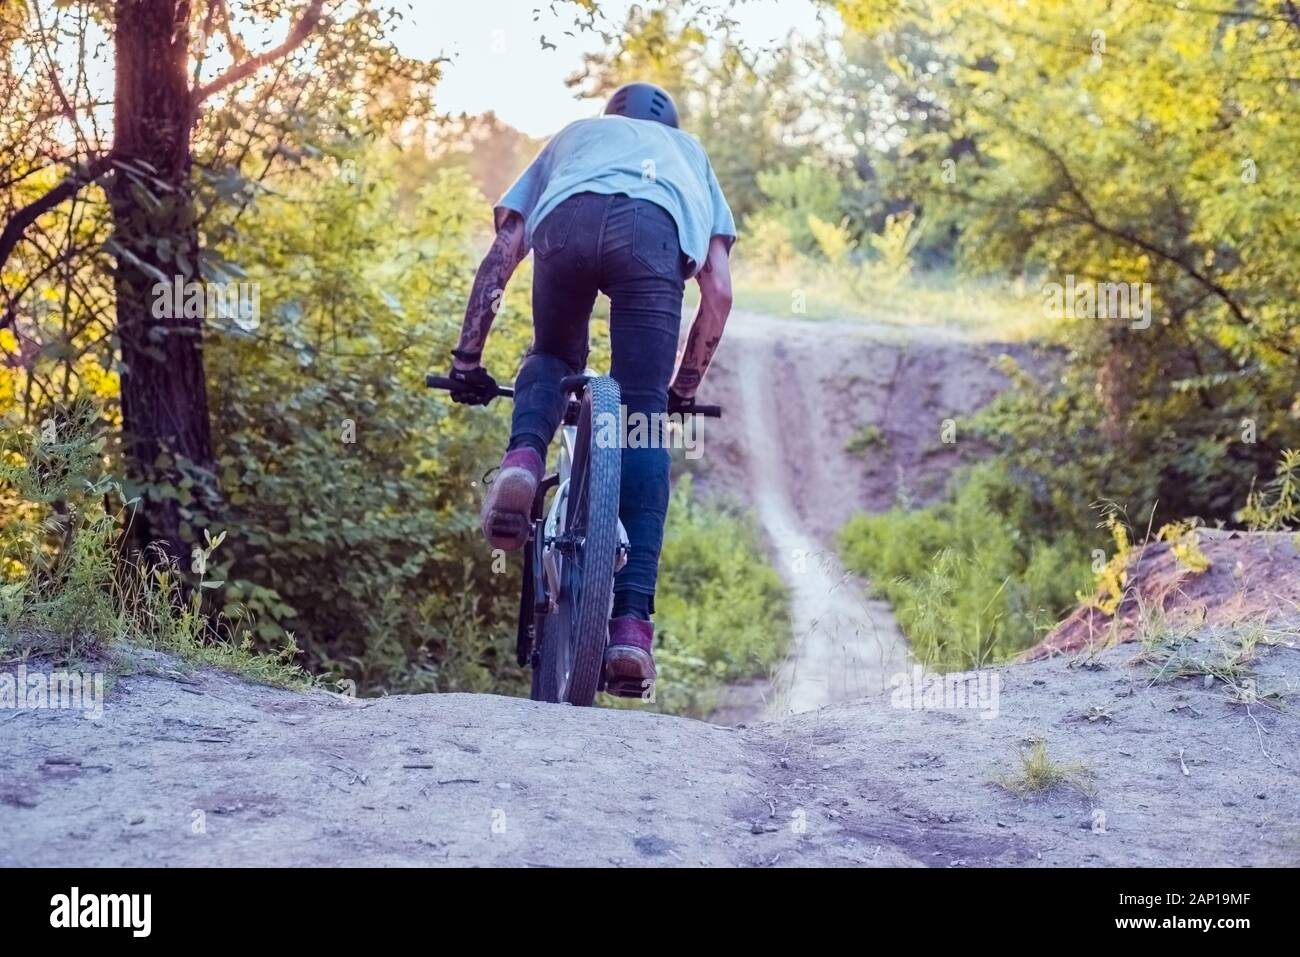 athlete, cyclist rides on a road in the forest. Cycling Stock Photo